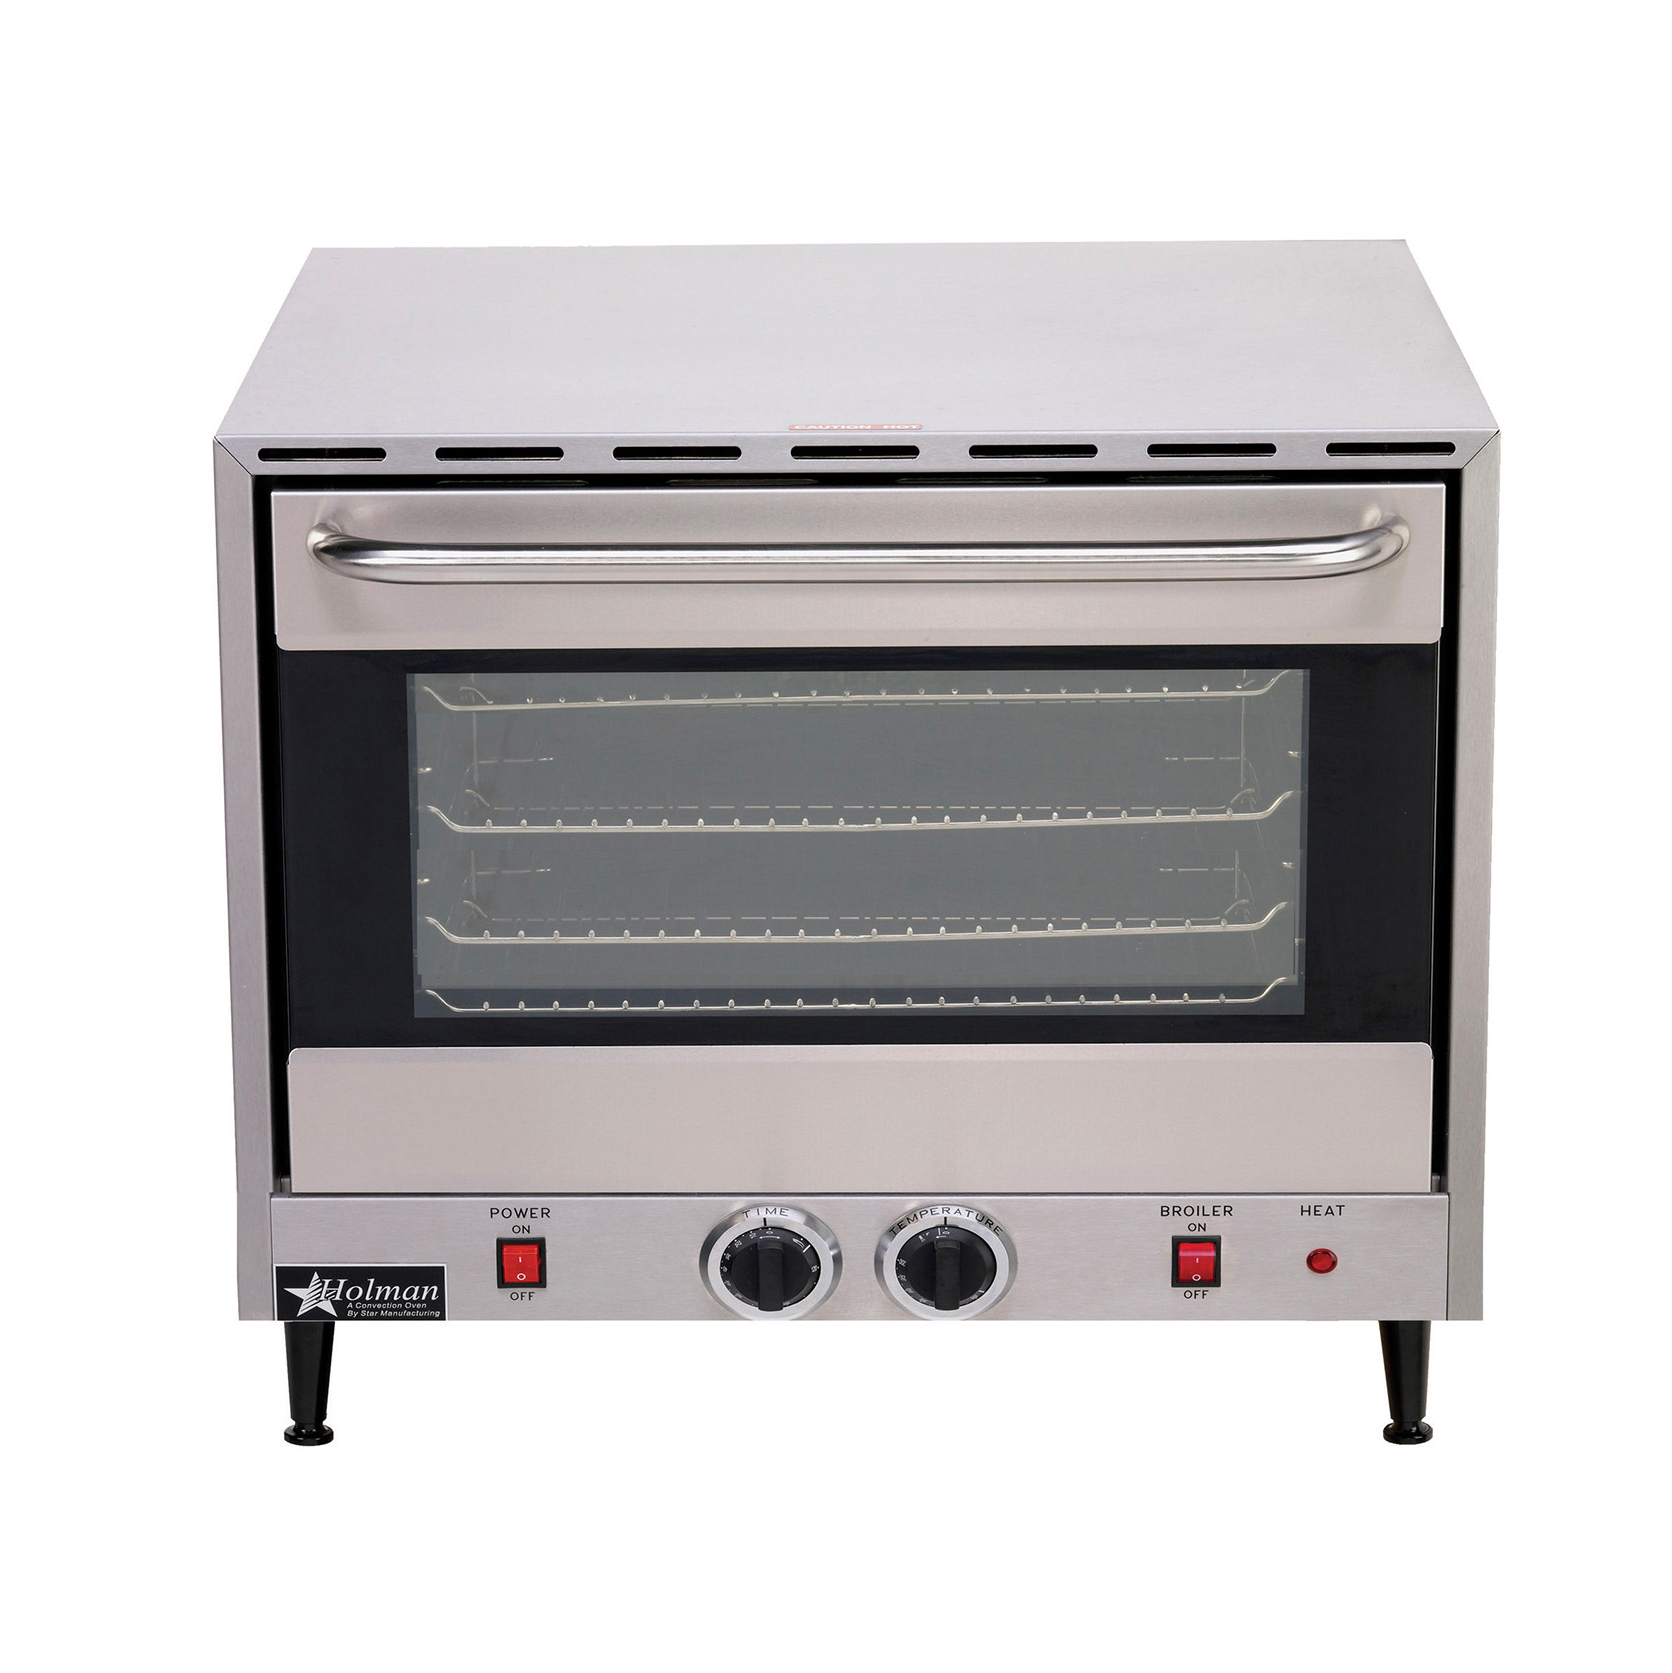 Star CCOF-4 convection oven, electric